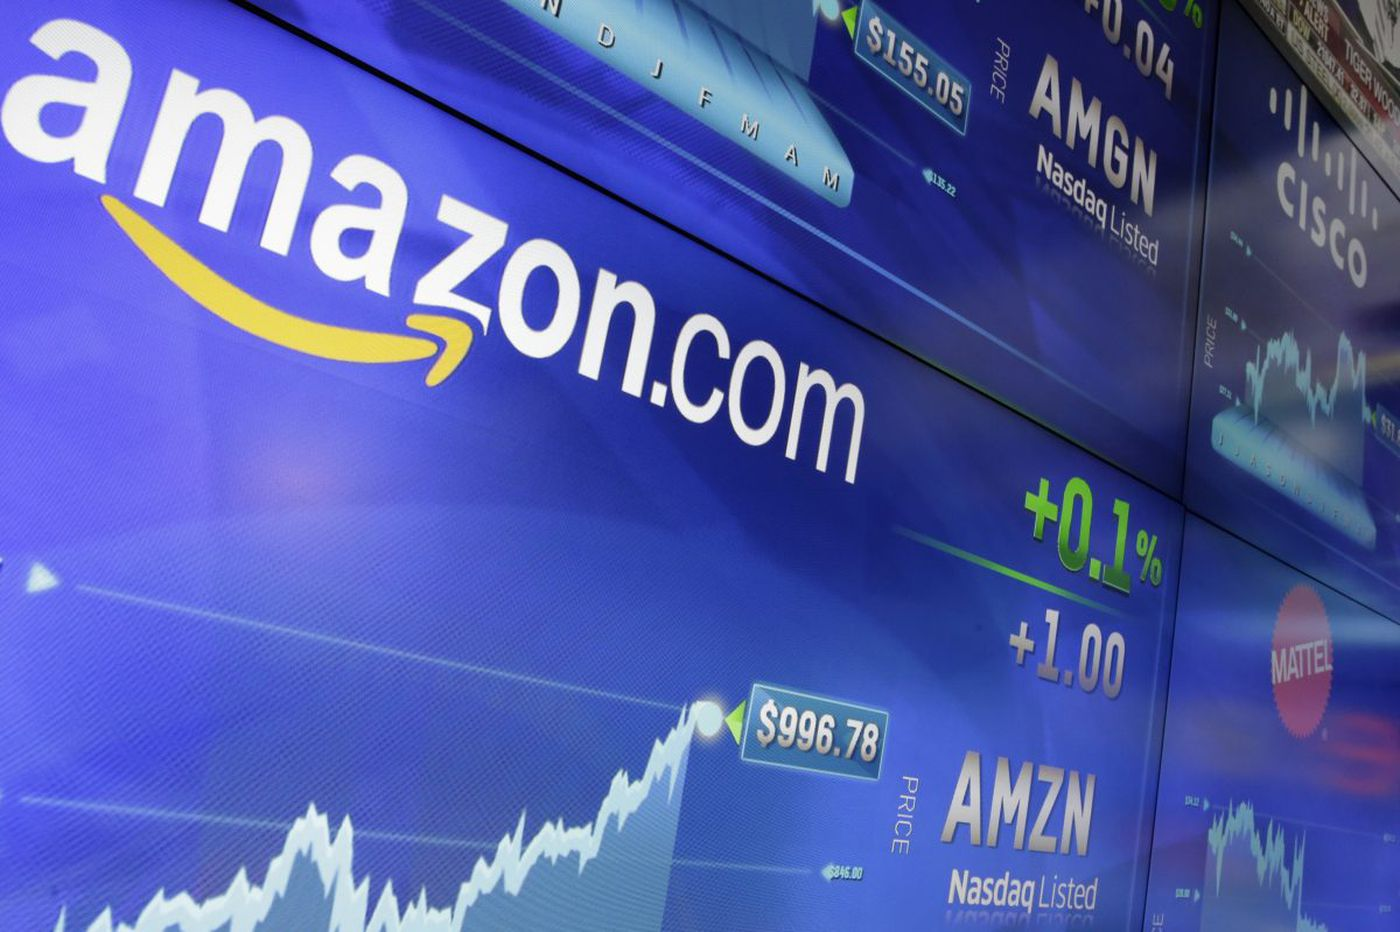 Is Amazon HQ2 Philly a real possibility or pipe dream?